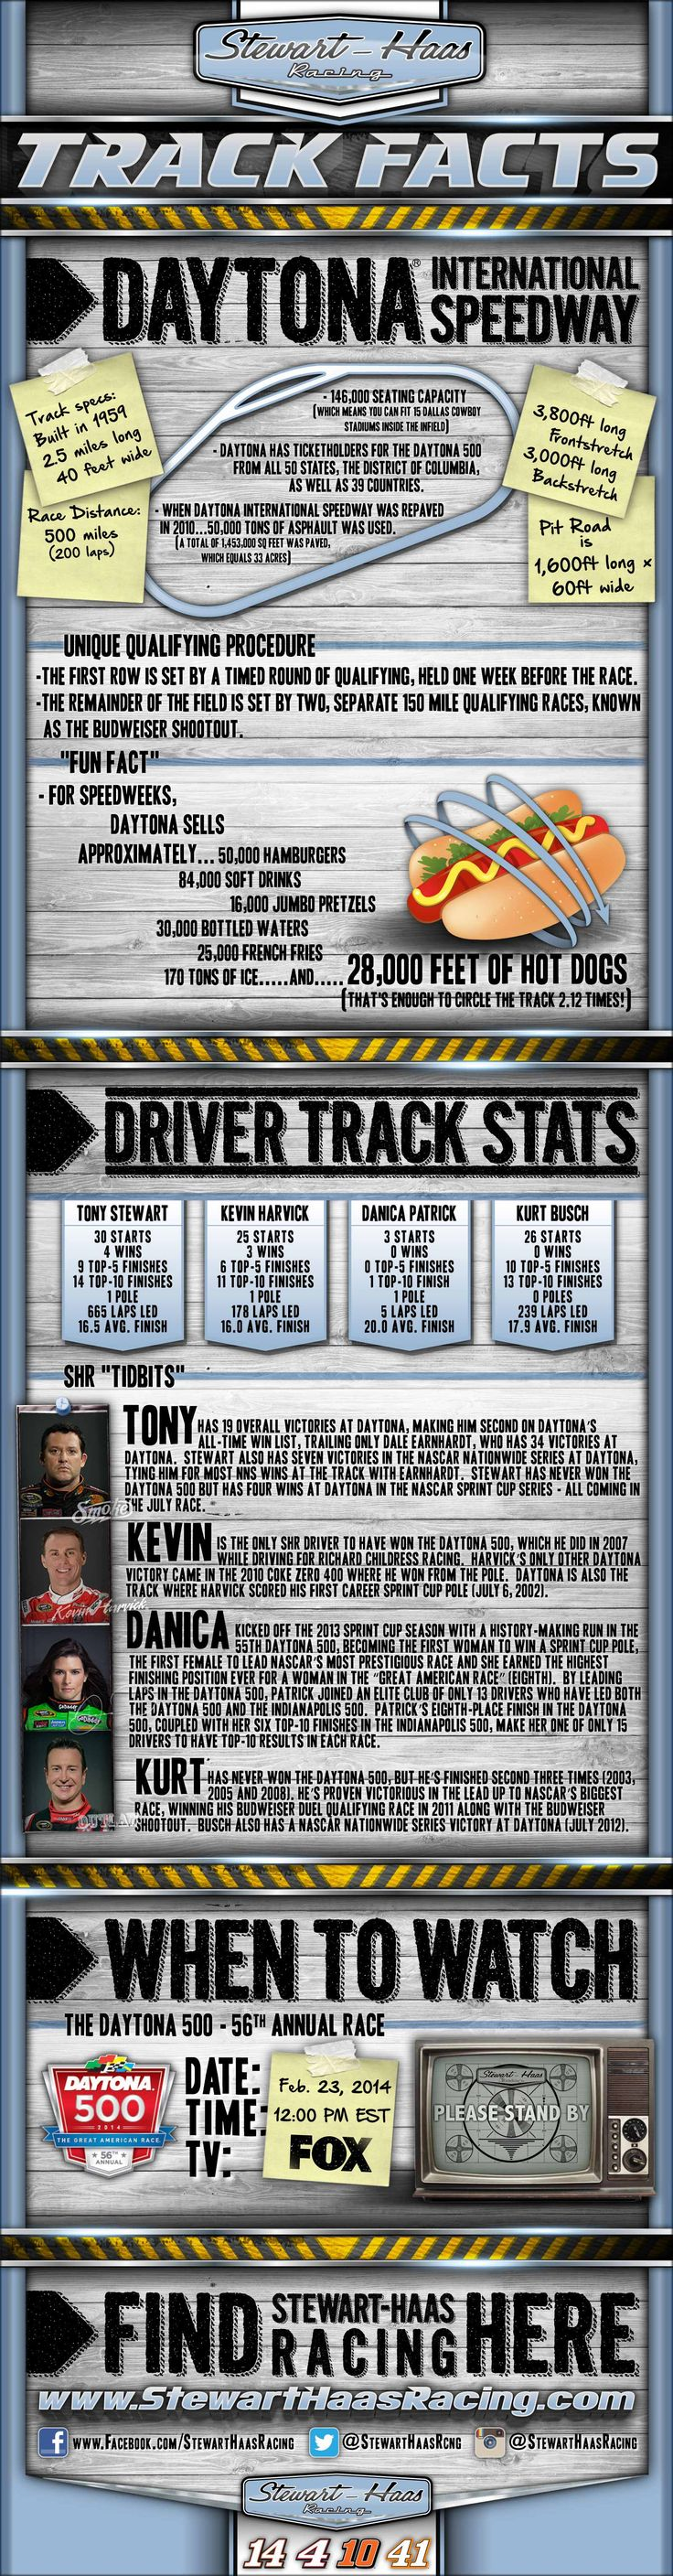 TRACK FACTS: Stewart-Haas Racing, our drivers and Daytona International Speedway